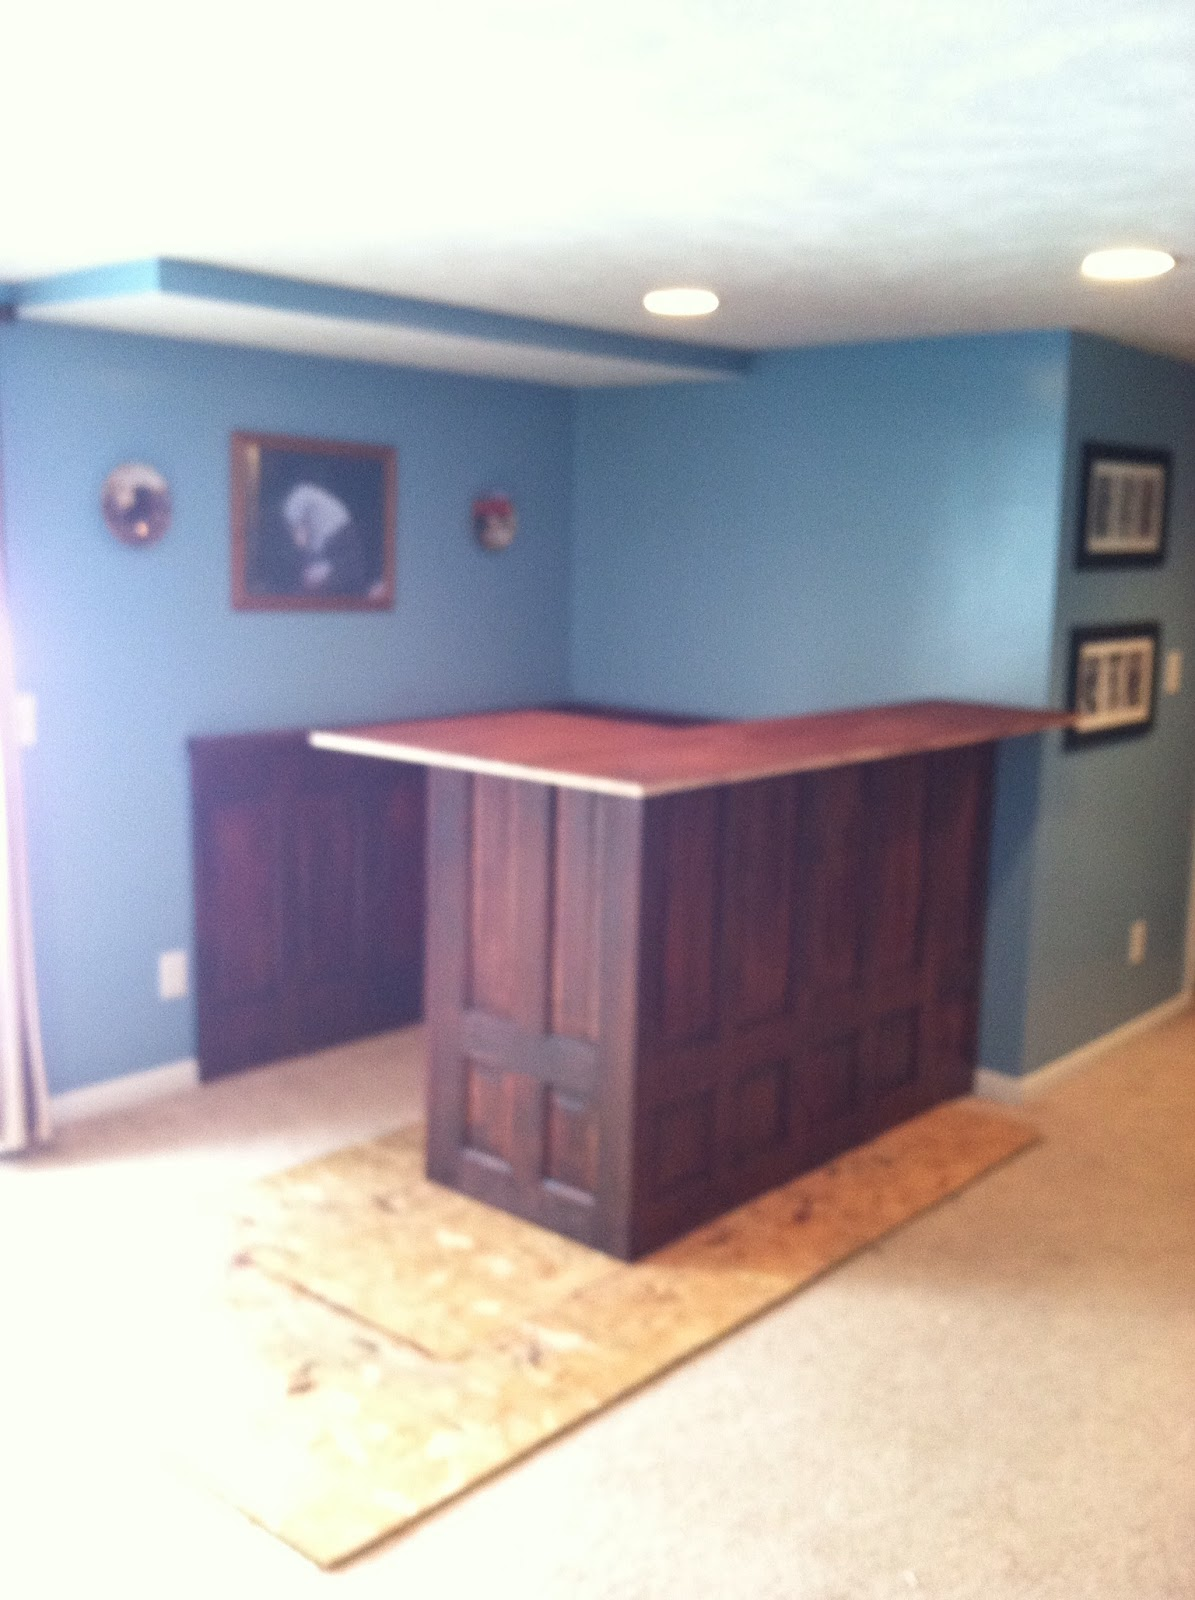 home bar ideas on a budget roxanne recycles how to build a home bar on a budget 44278